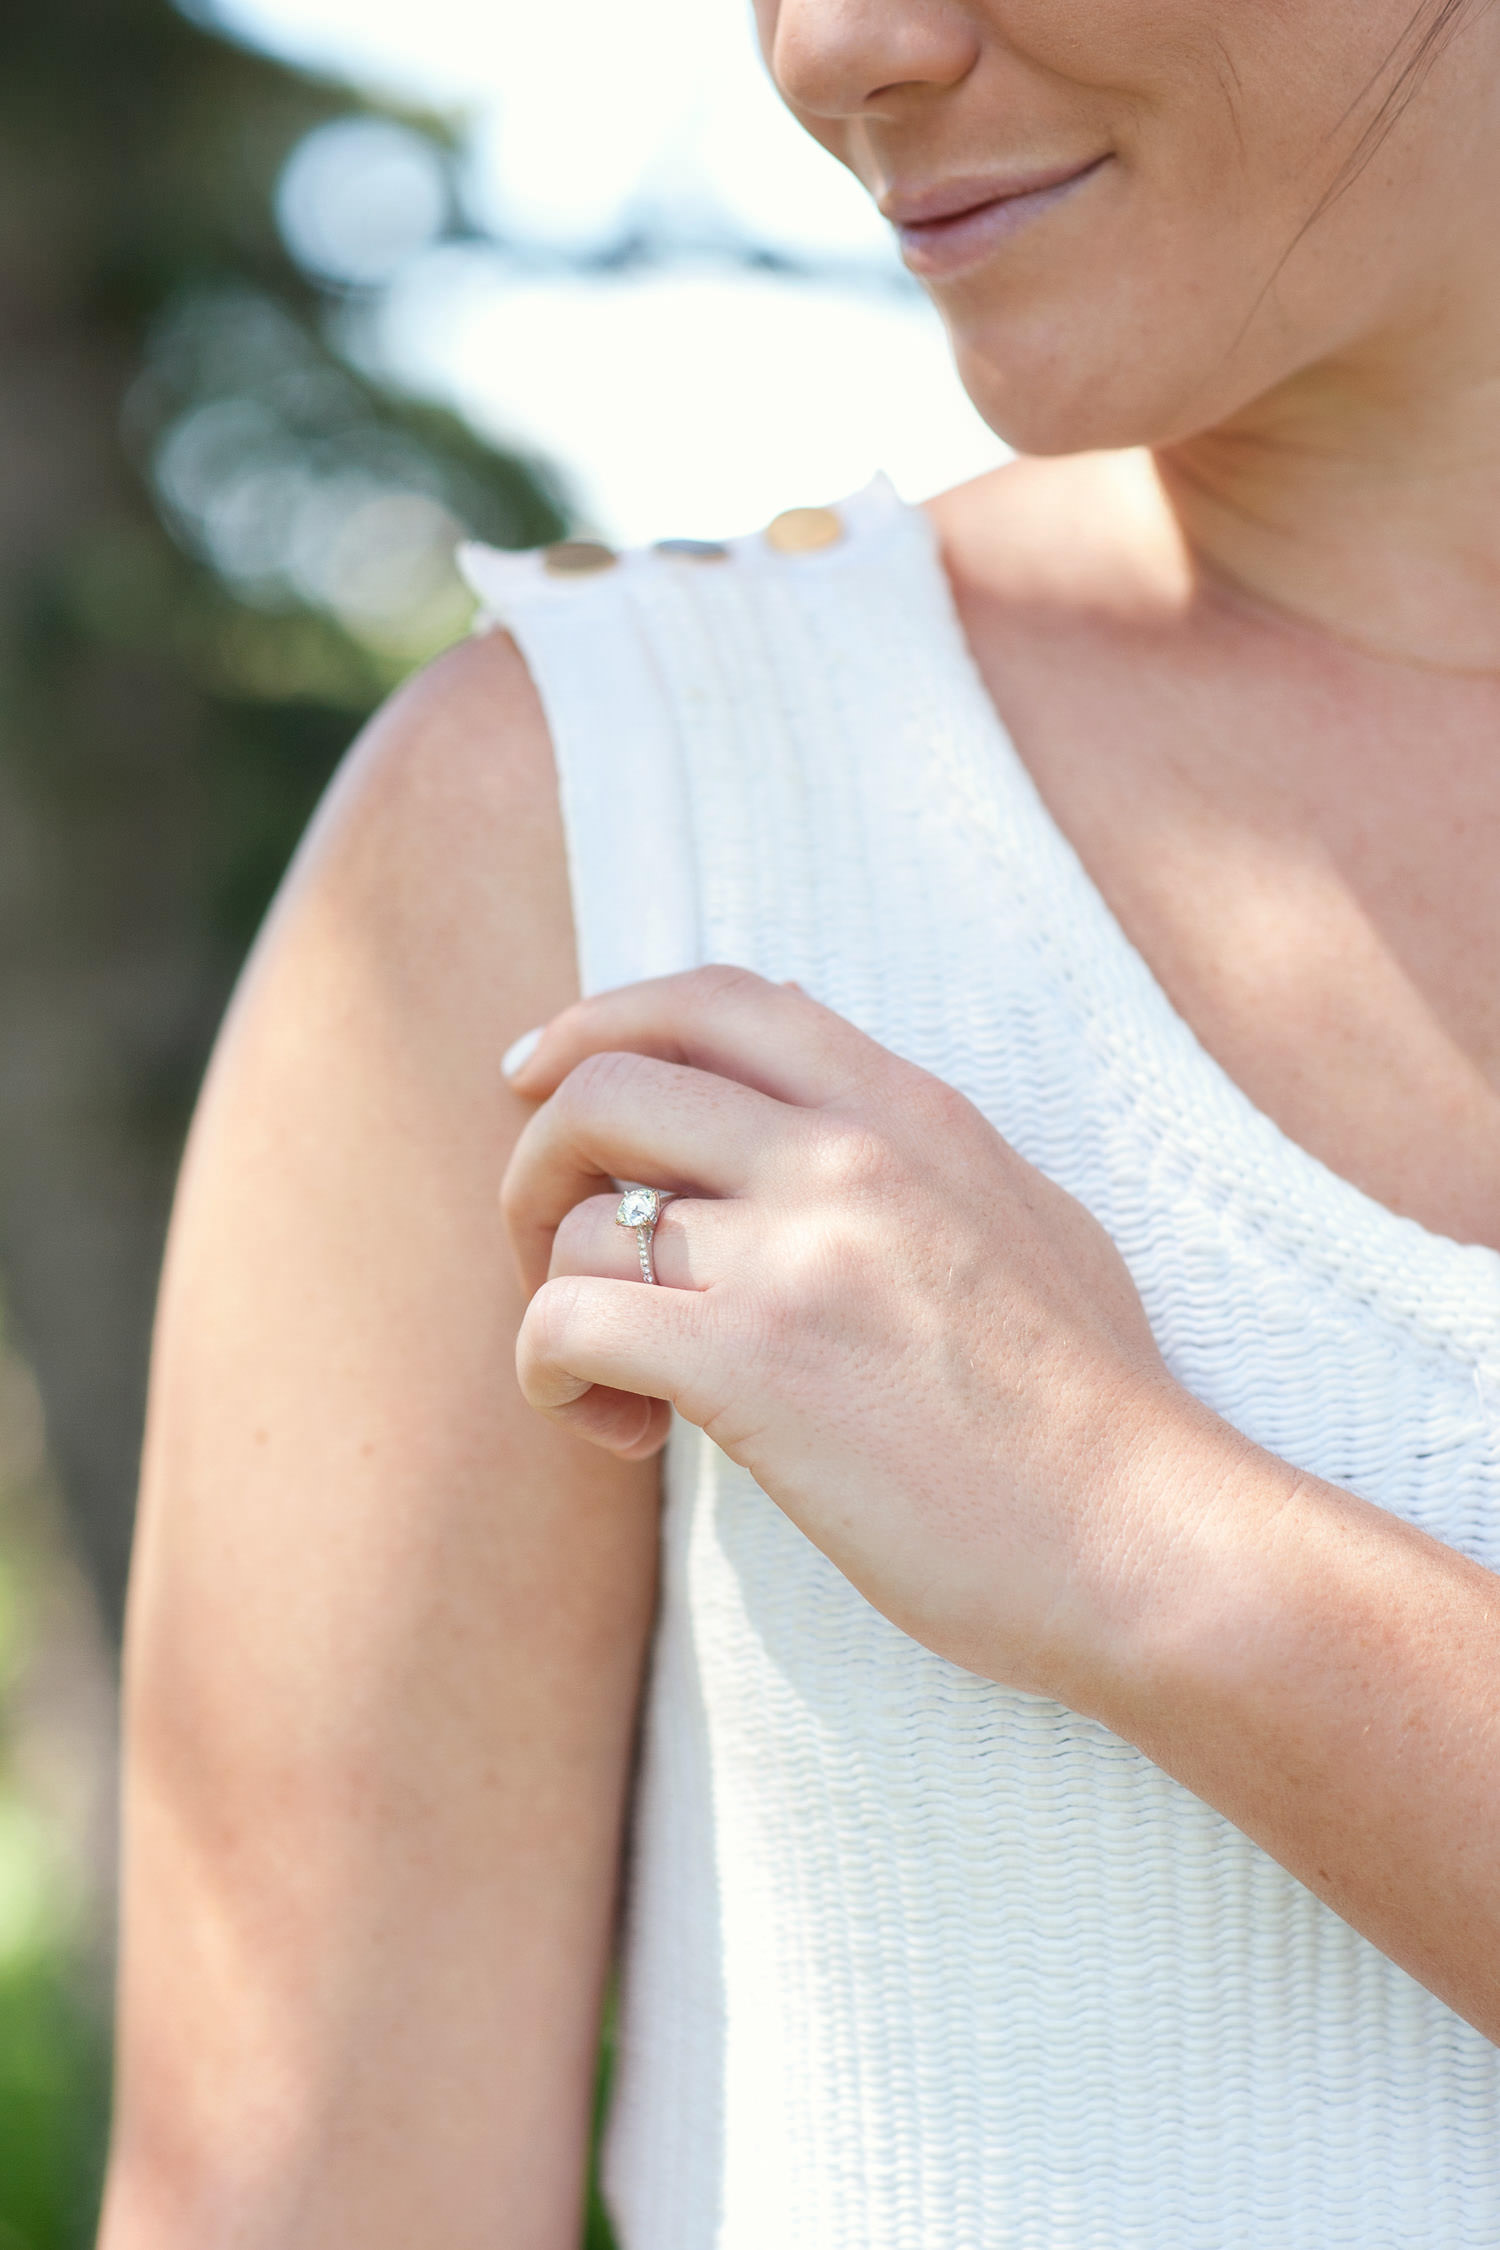 bride Dani and her engagement ring captured by Tara Whittaker Photography